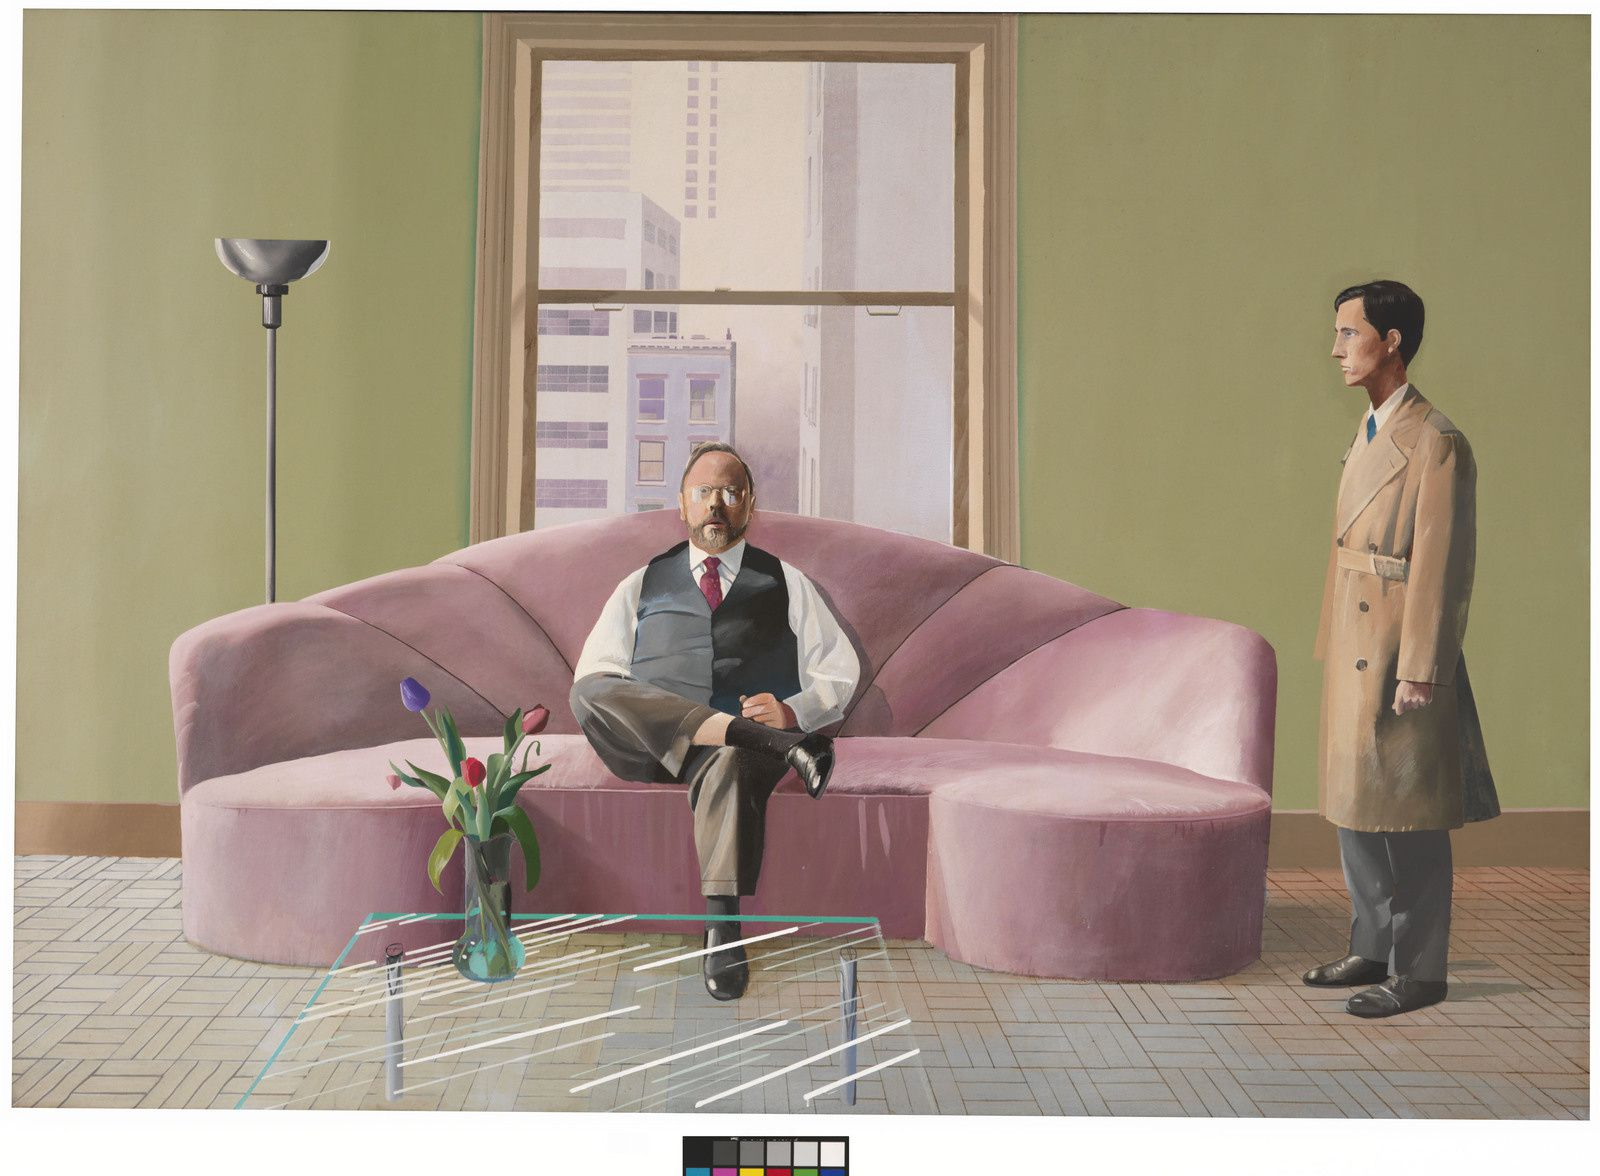 """Henri Geldzahler and Christopher Scott"", 1969 de David HOCKNEY"